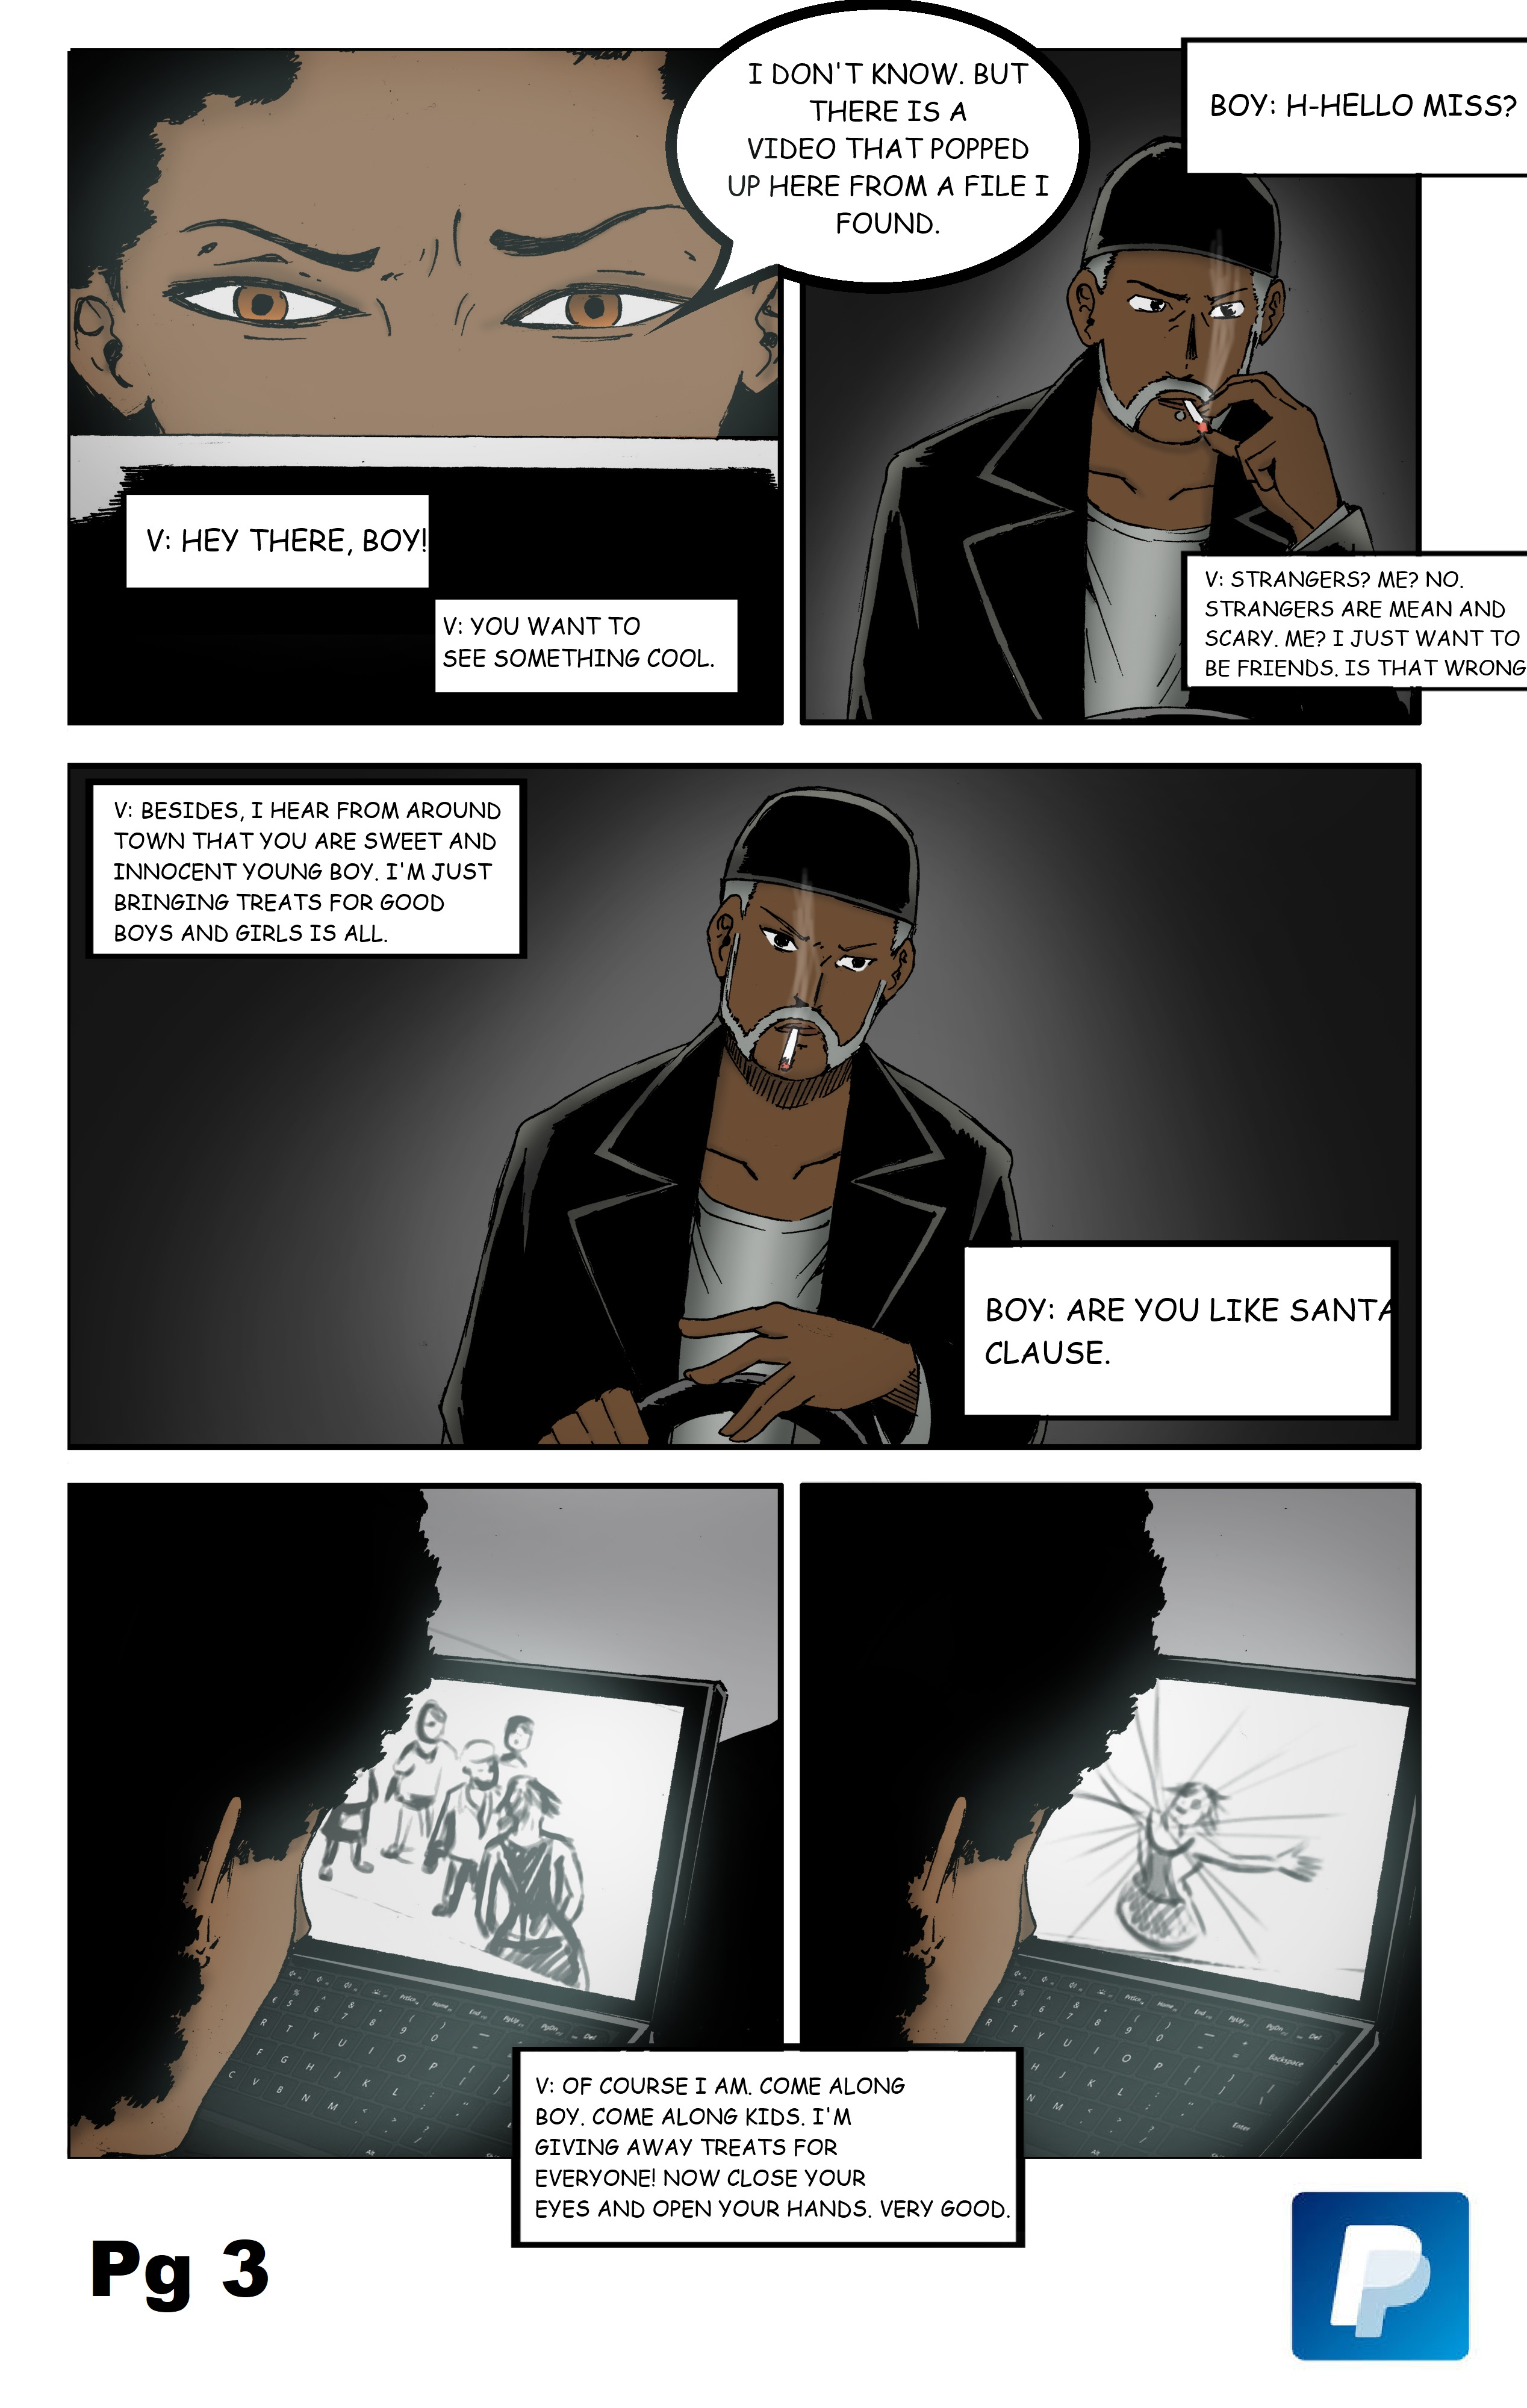 PAGE THREE: The Adventure Begins Iss. #3 Vol. #1